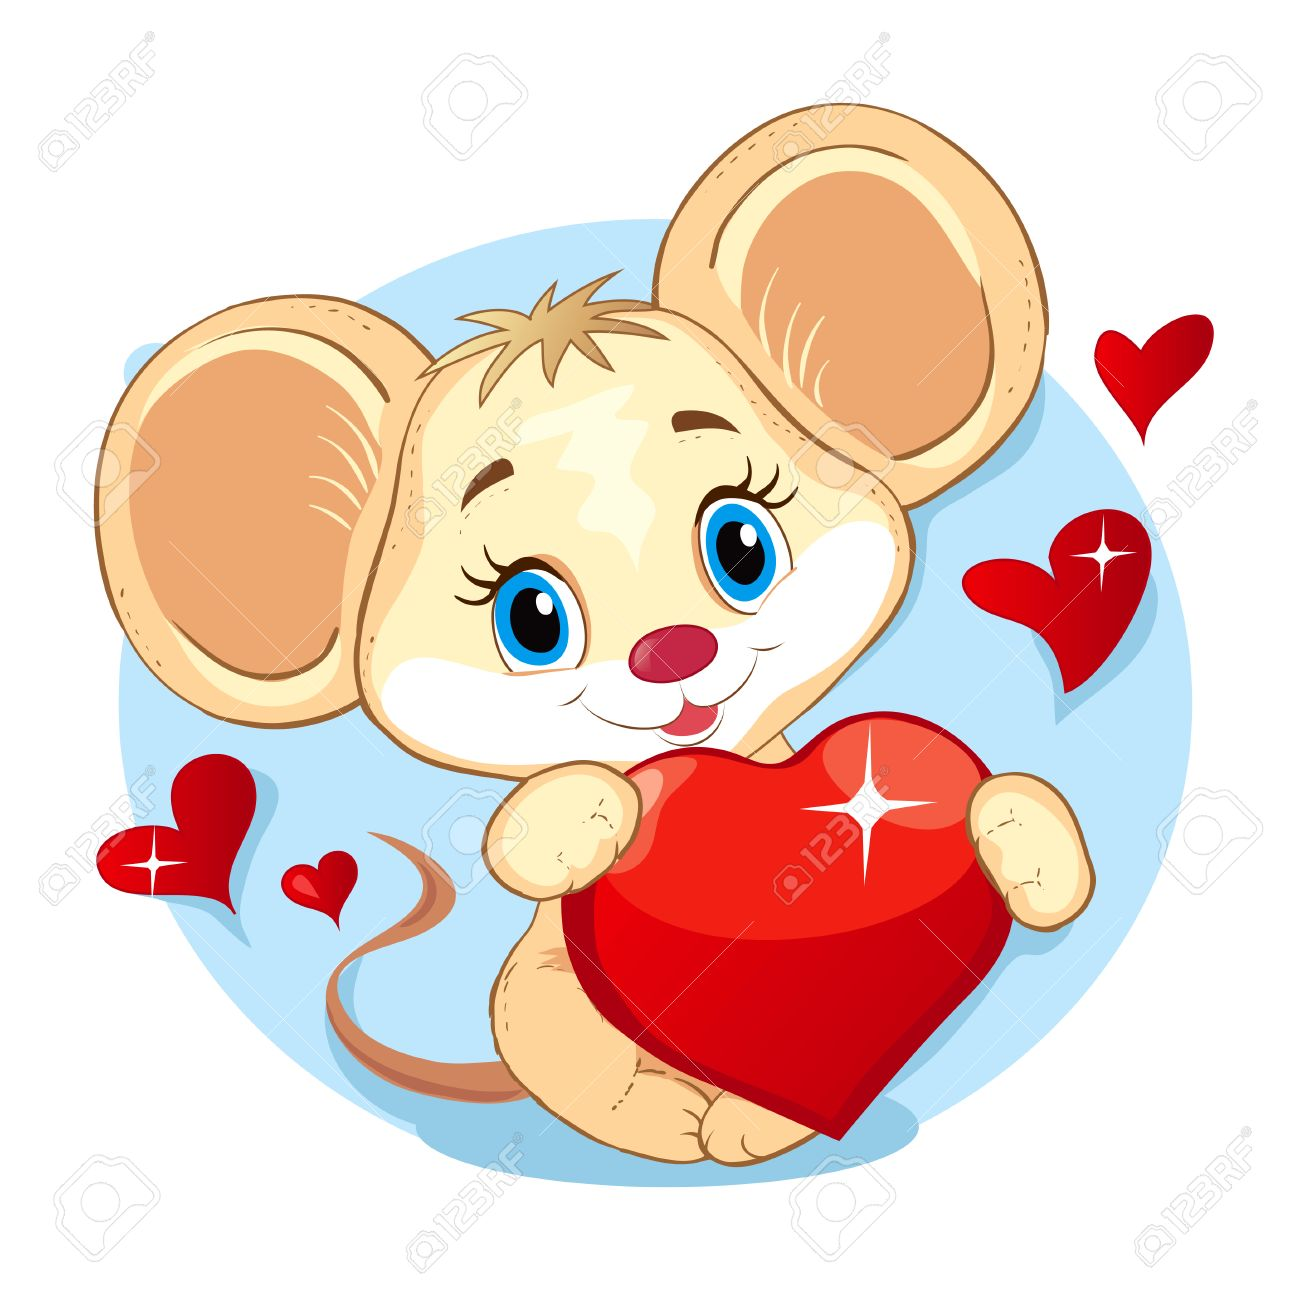 2,733 Little Mouse Stock Vector Illustration And Royalty Free.